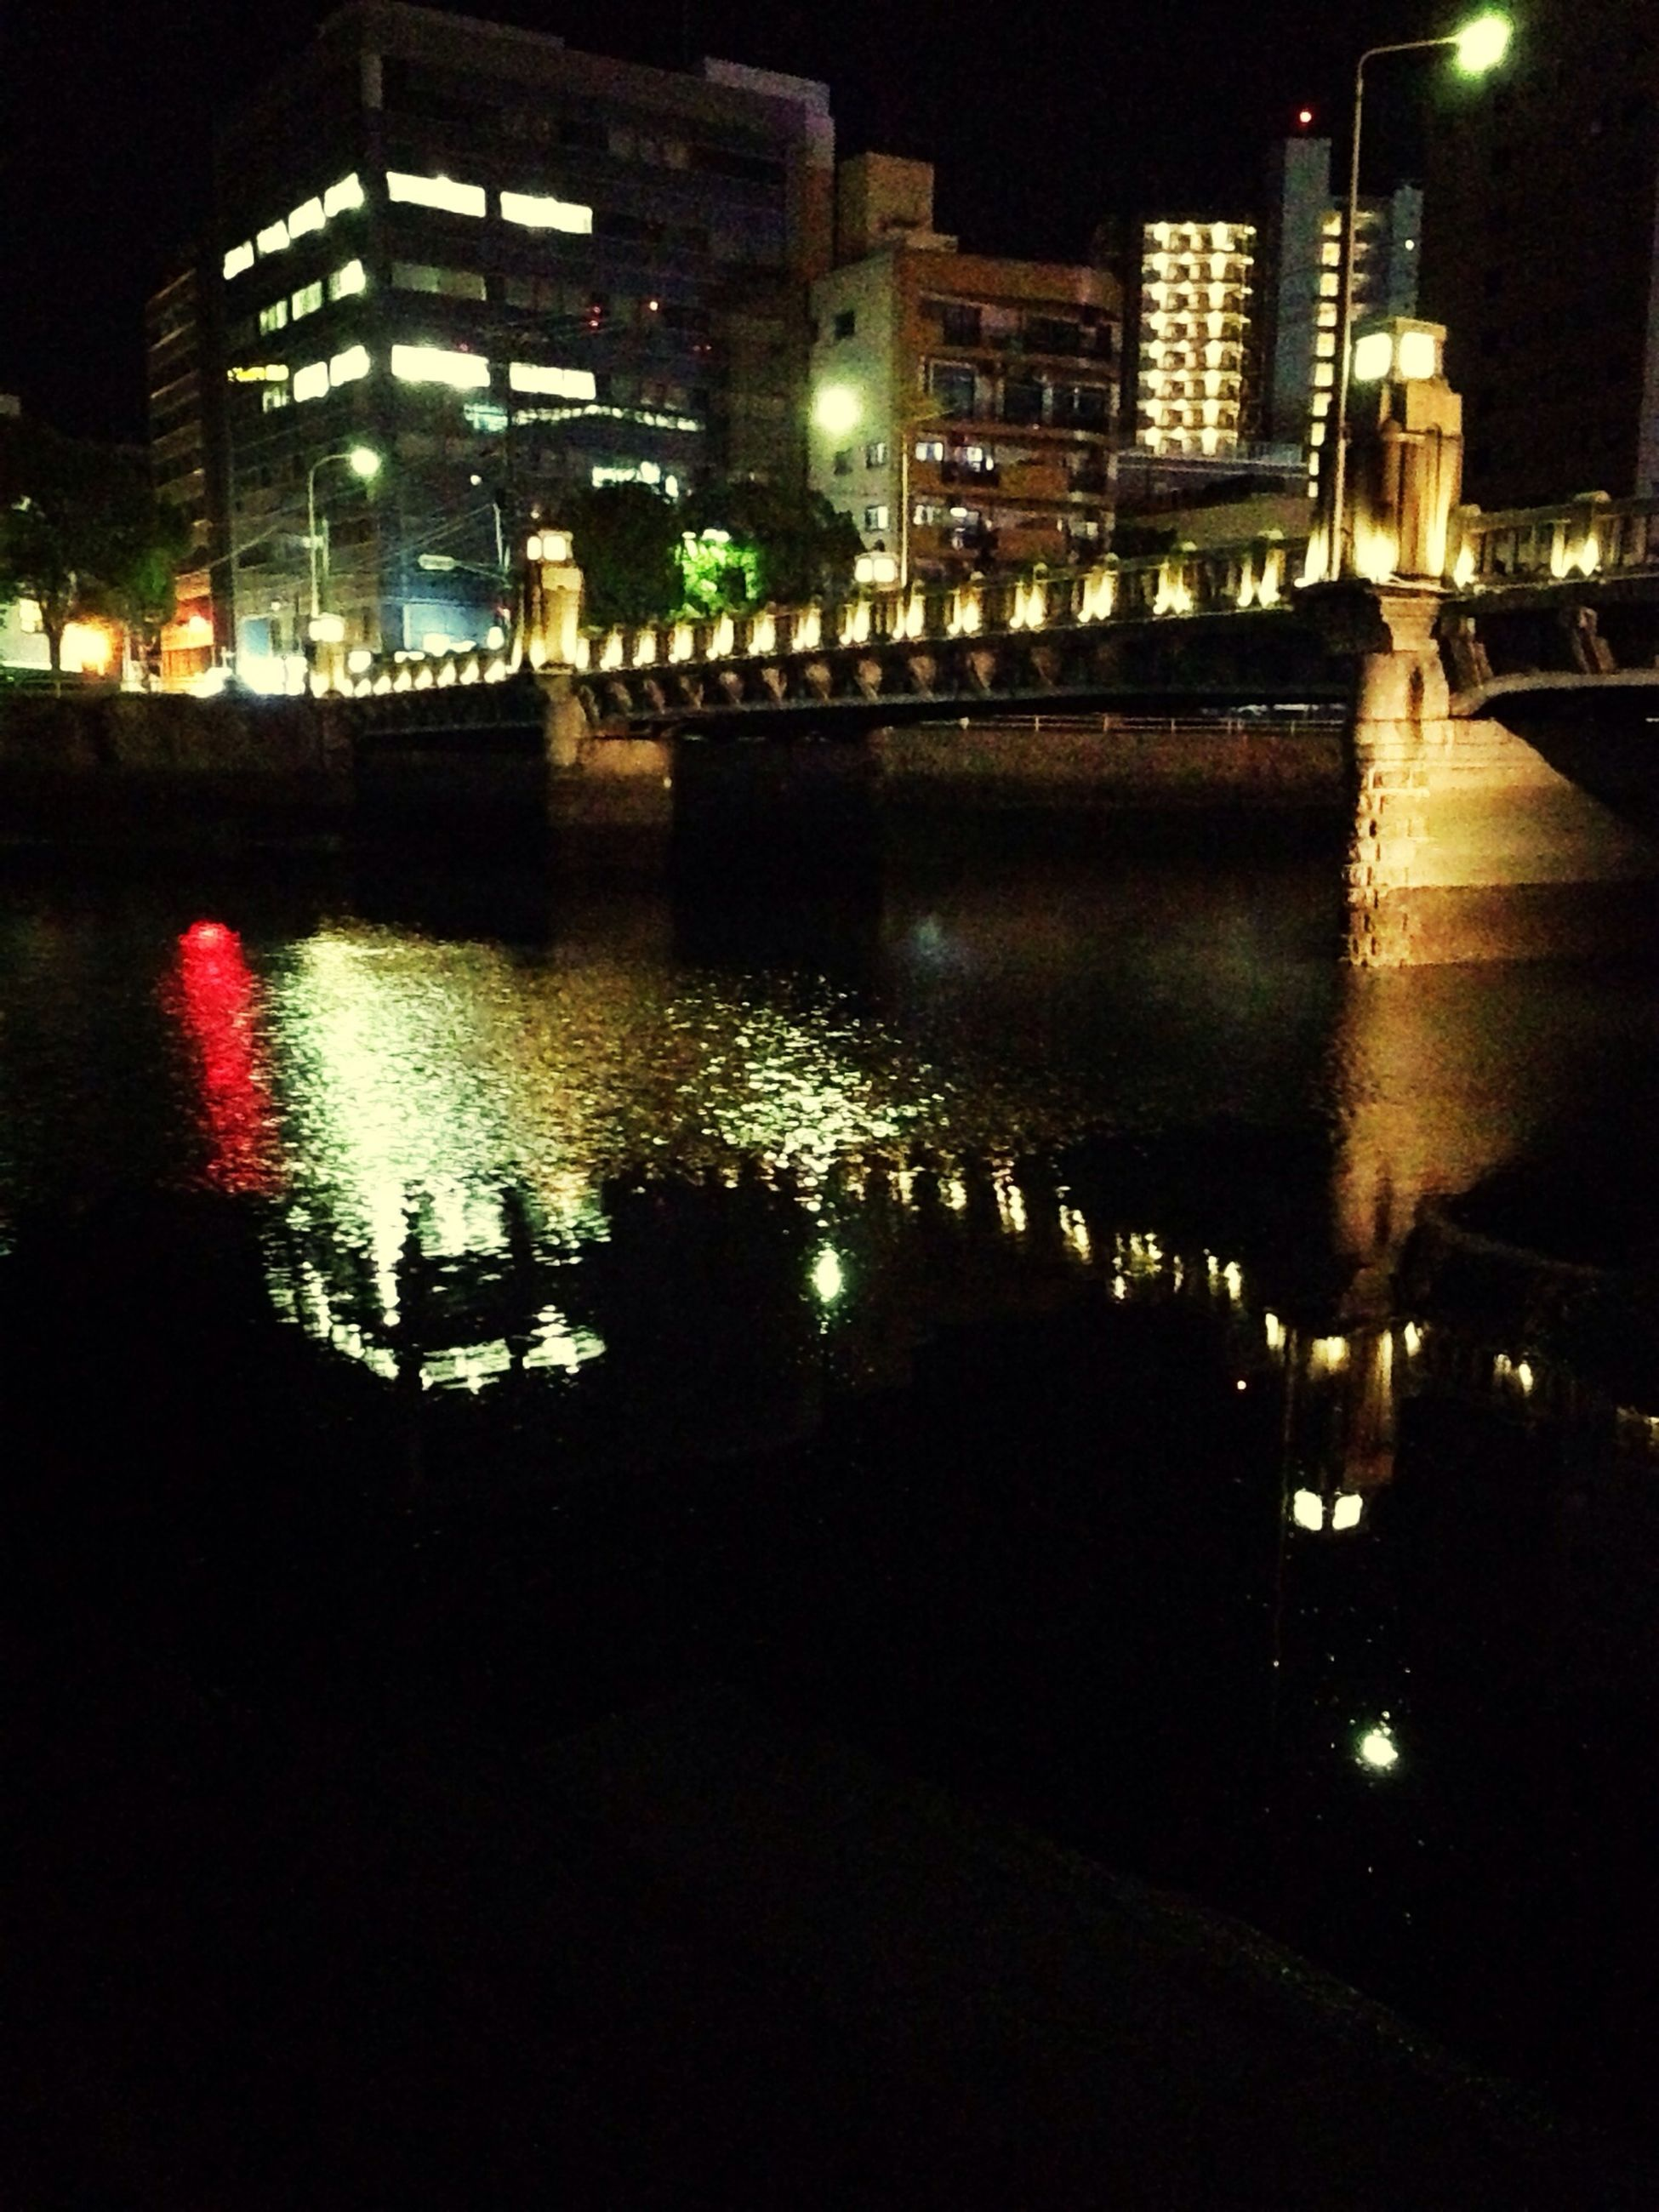 illuminated, night, building exterior, architecture, built structure, city, water, reflection, cityscape, river, street light, city life, waterfront, building, street, residential building, lighting equipment, skyscraper, modern, light - natural phenomenon